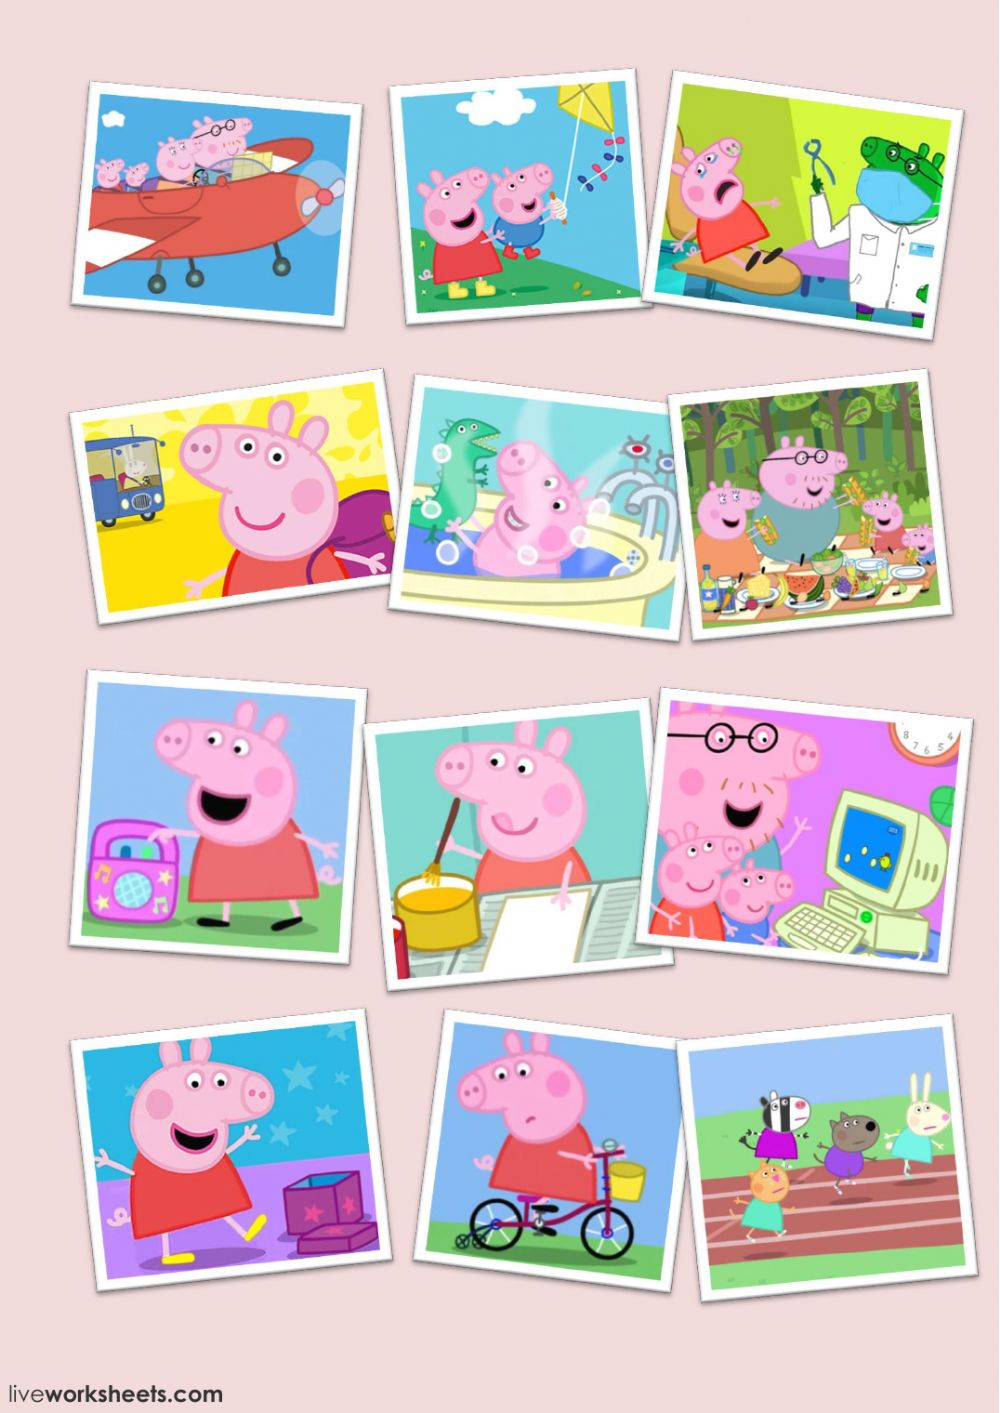 Learn YourVerbs With Peppa Pig - Interactive worksheet